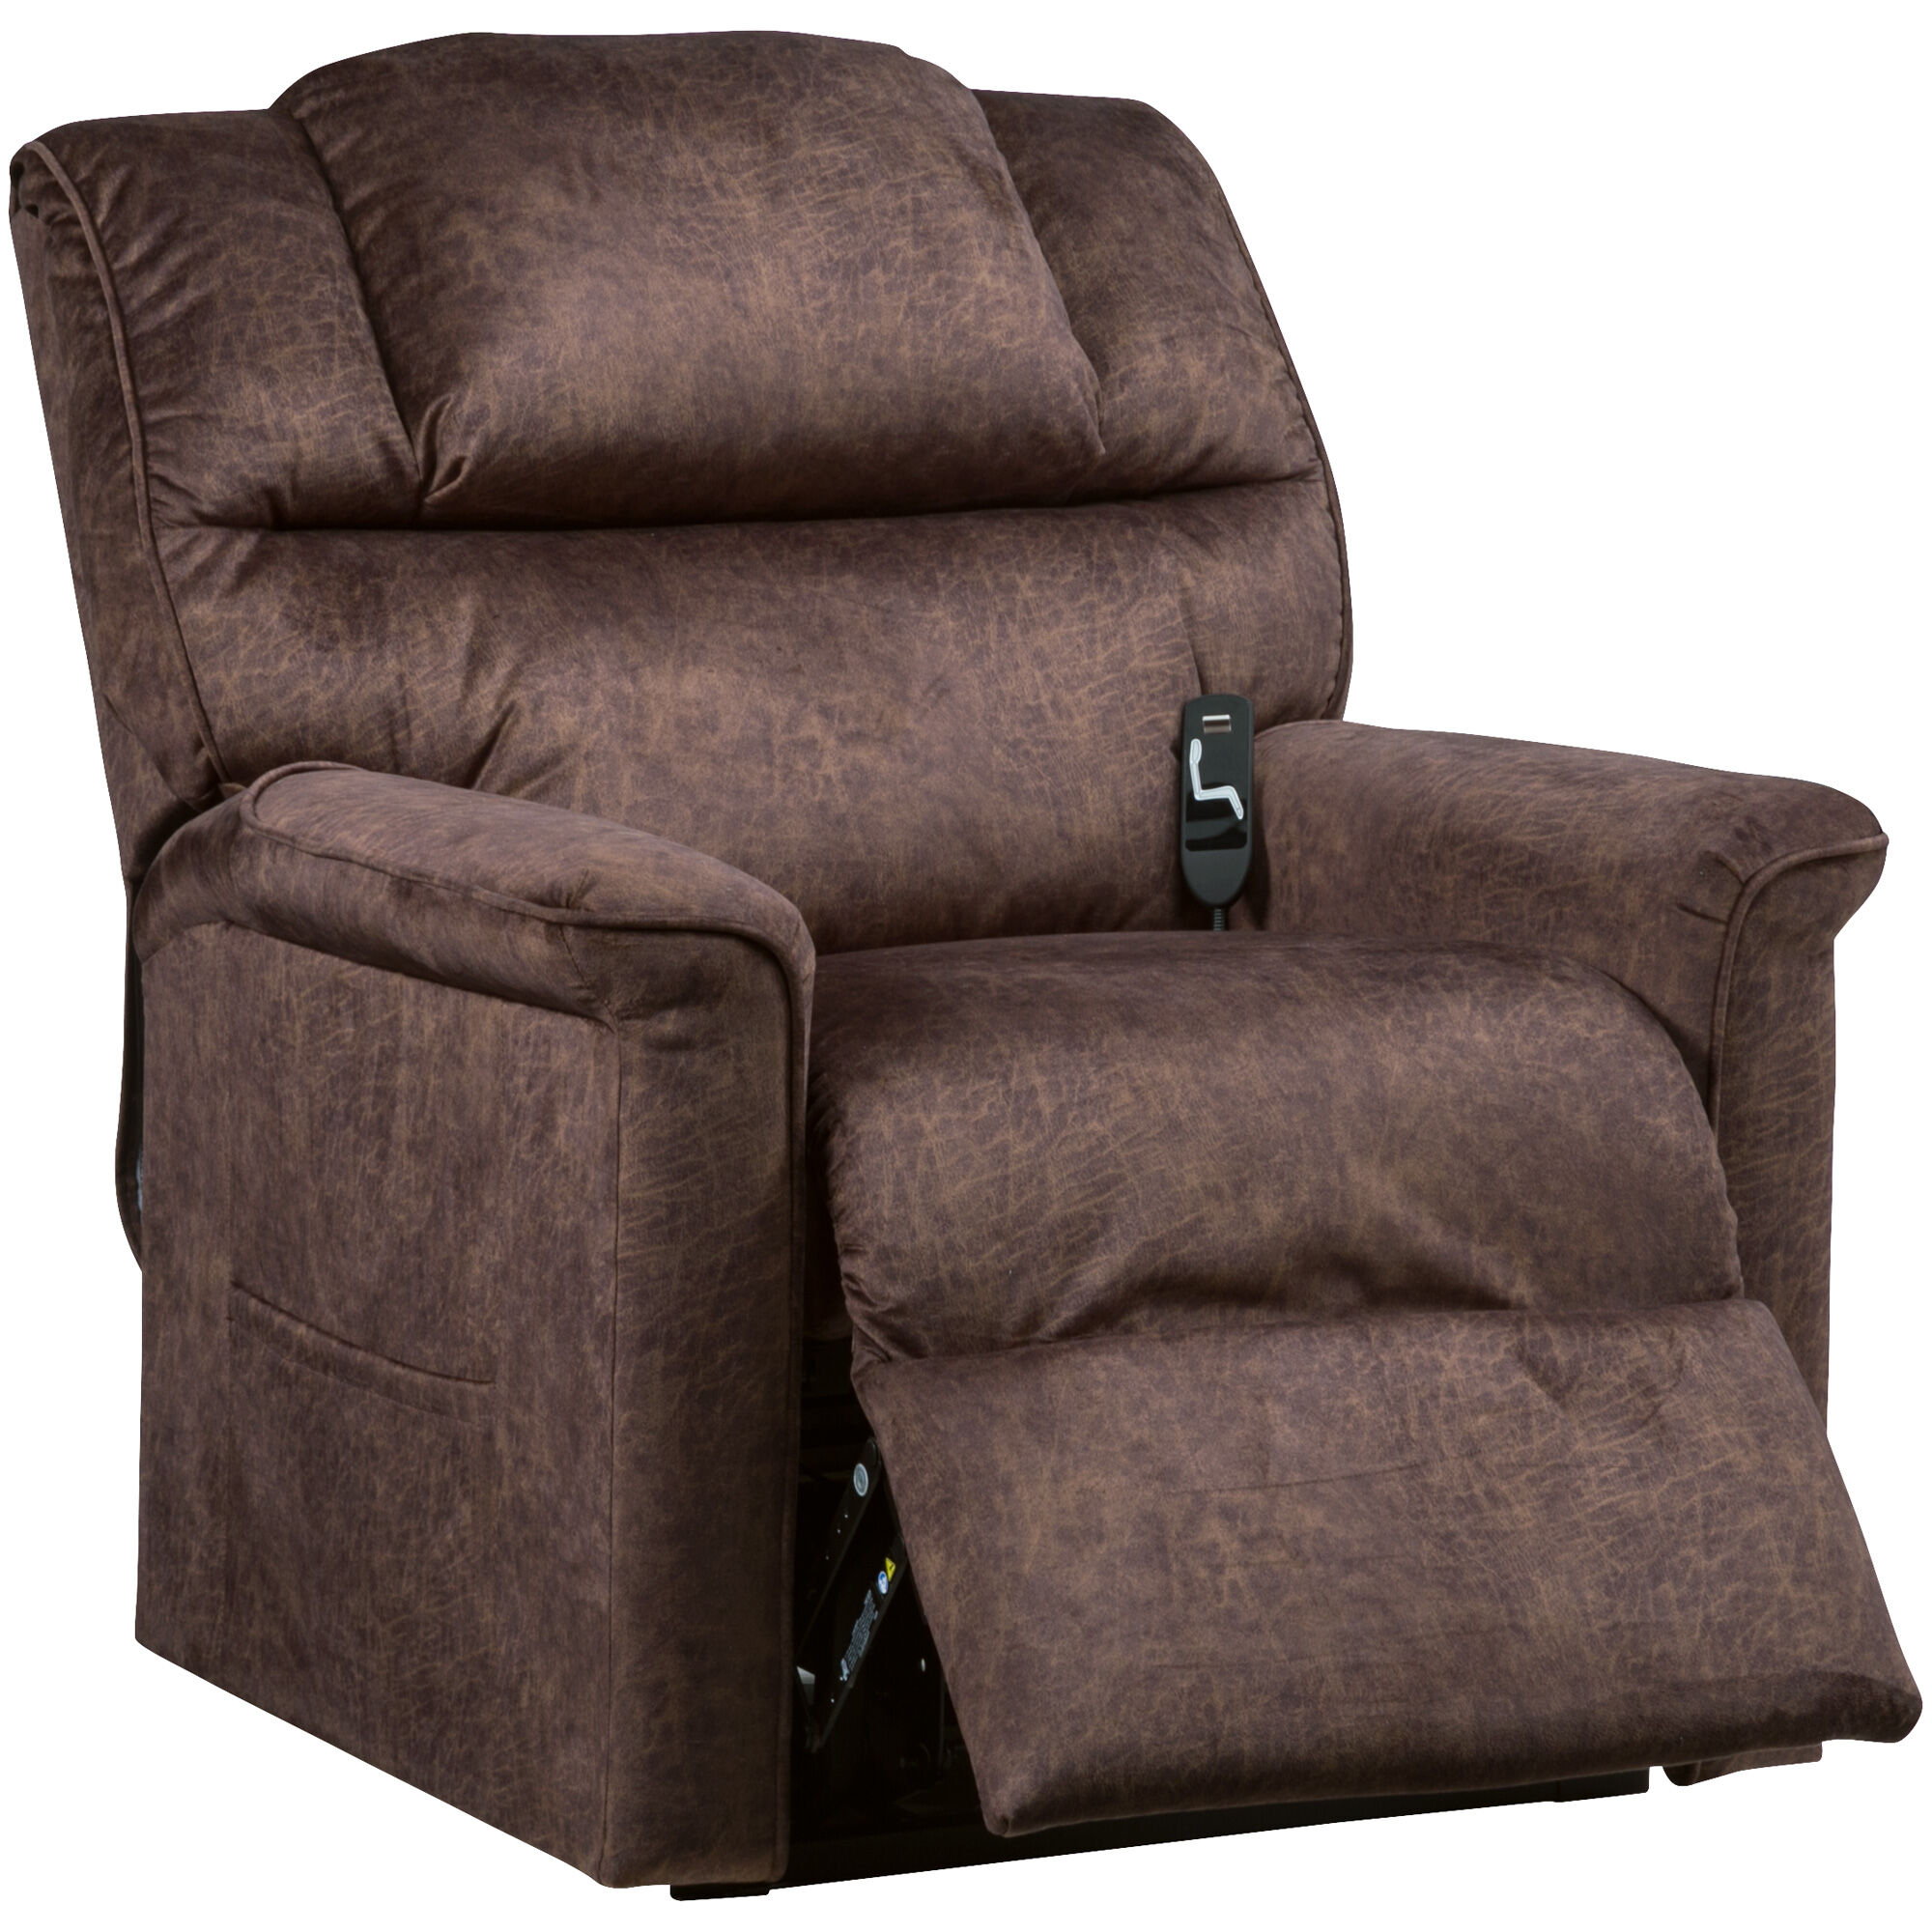 riser recliner chairs for the elderly reviews revolving lounge chair slumberland furniture lift pearl